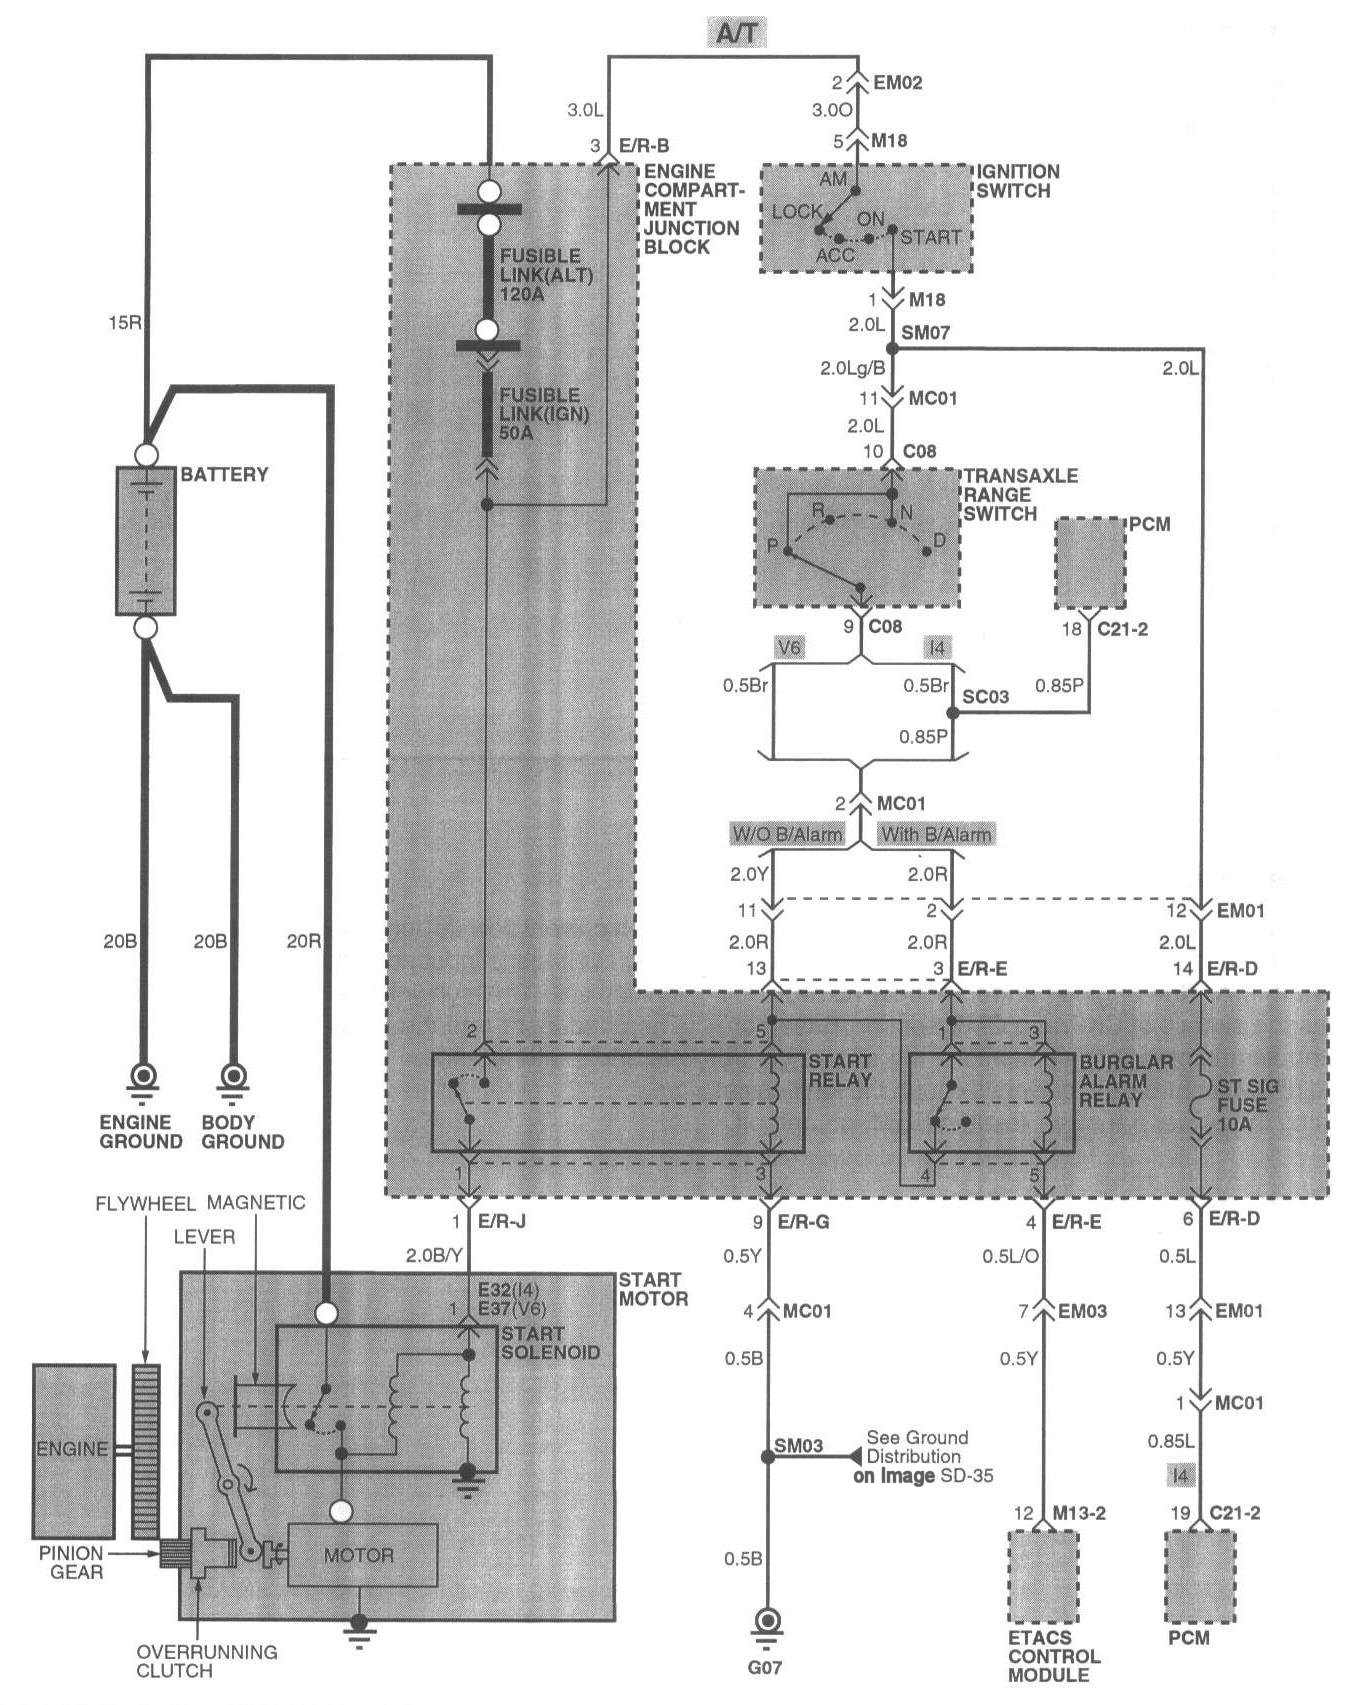 2001 Santa Fe Wiring Schematic Trusted Diagram 2005 Elantra Engine Hyundai Car Image Details Red